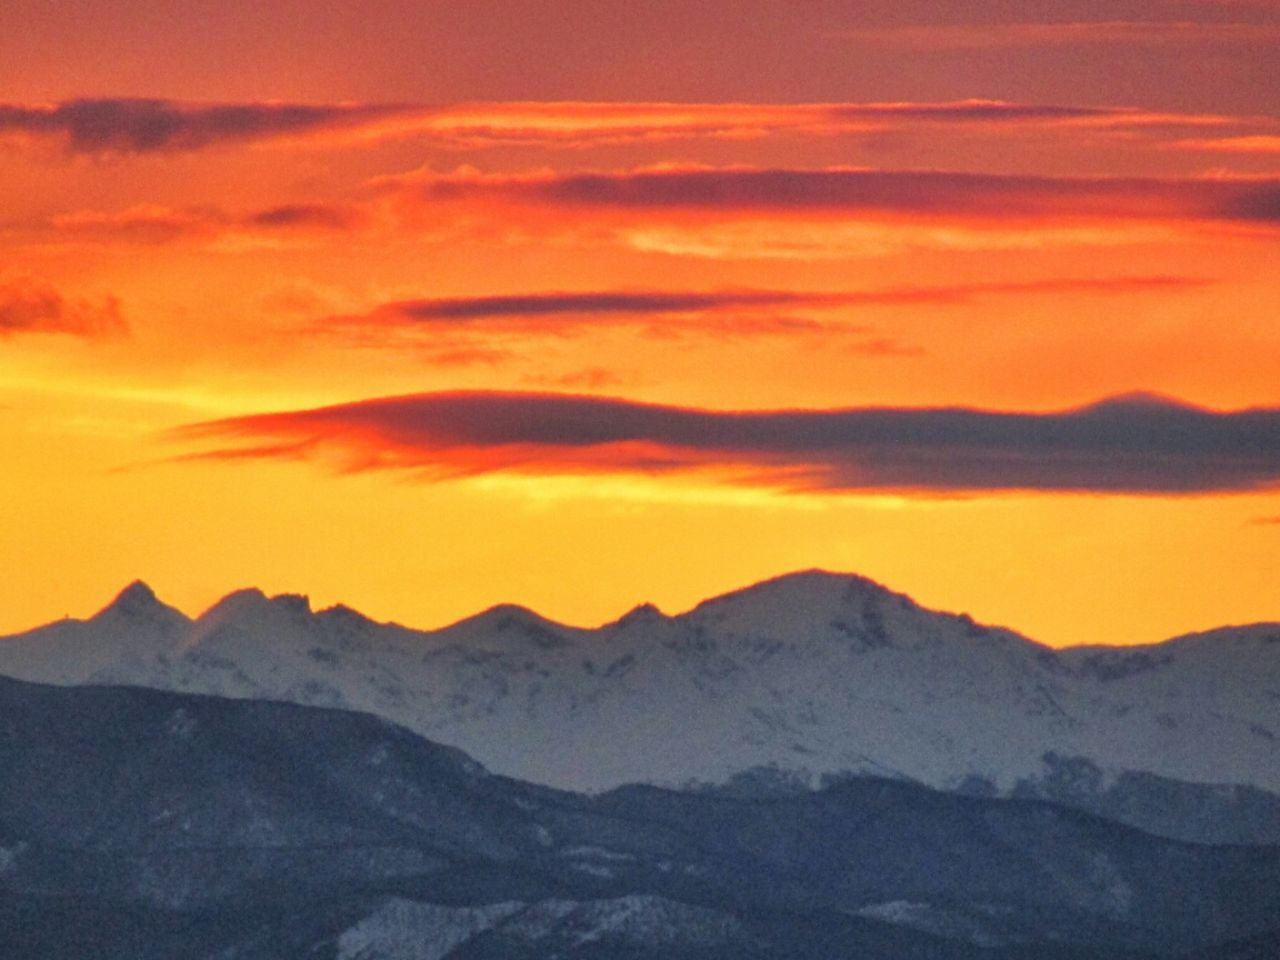 sunset, mountain, scenics, tranquil scene, beauty in nature, tranquility, orange color, physical geography, idyllic, mountain range, majestic, nature, landscape, non-urban scene, dramatic sky, sky, travel destinations, cloud - sky, geology, remote, dramatic landscape, tourism, atmospheric mood, romantic sky, outdoors, orange, high up, vibrant color, extreme terrain, atmosphere, no people, land feature